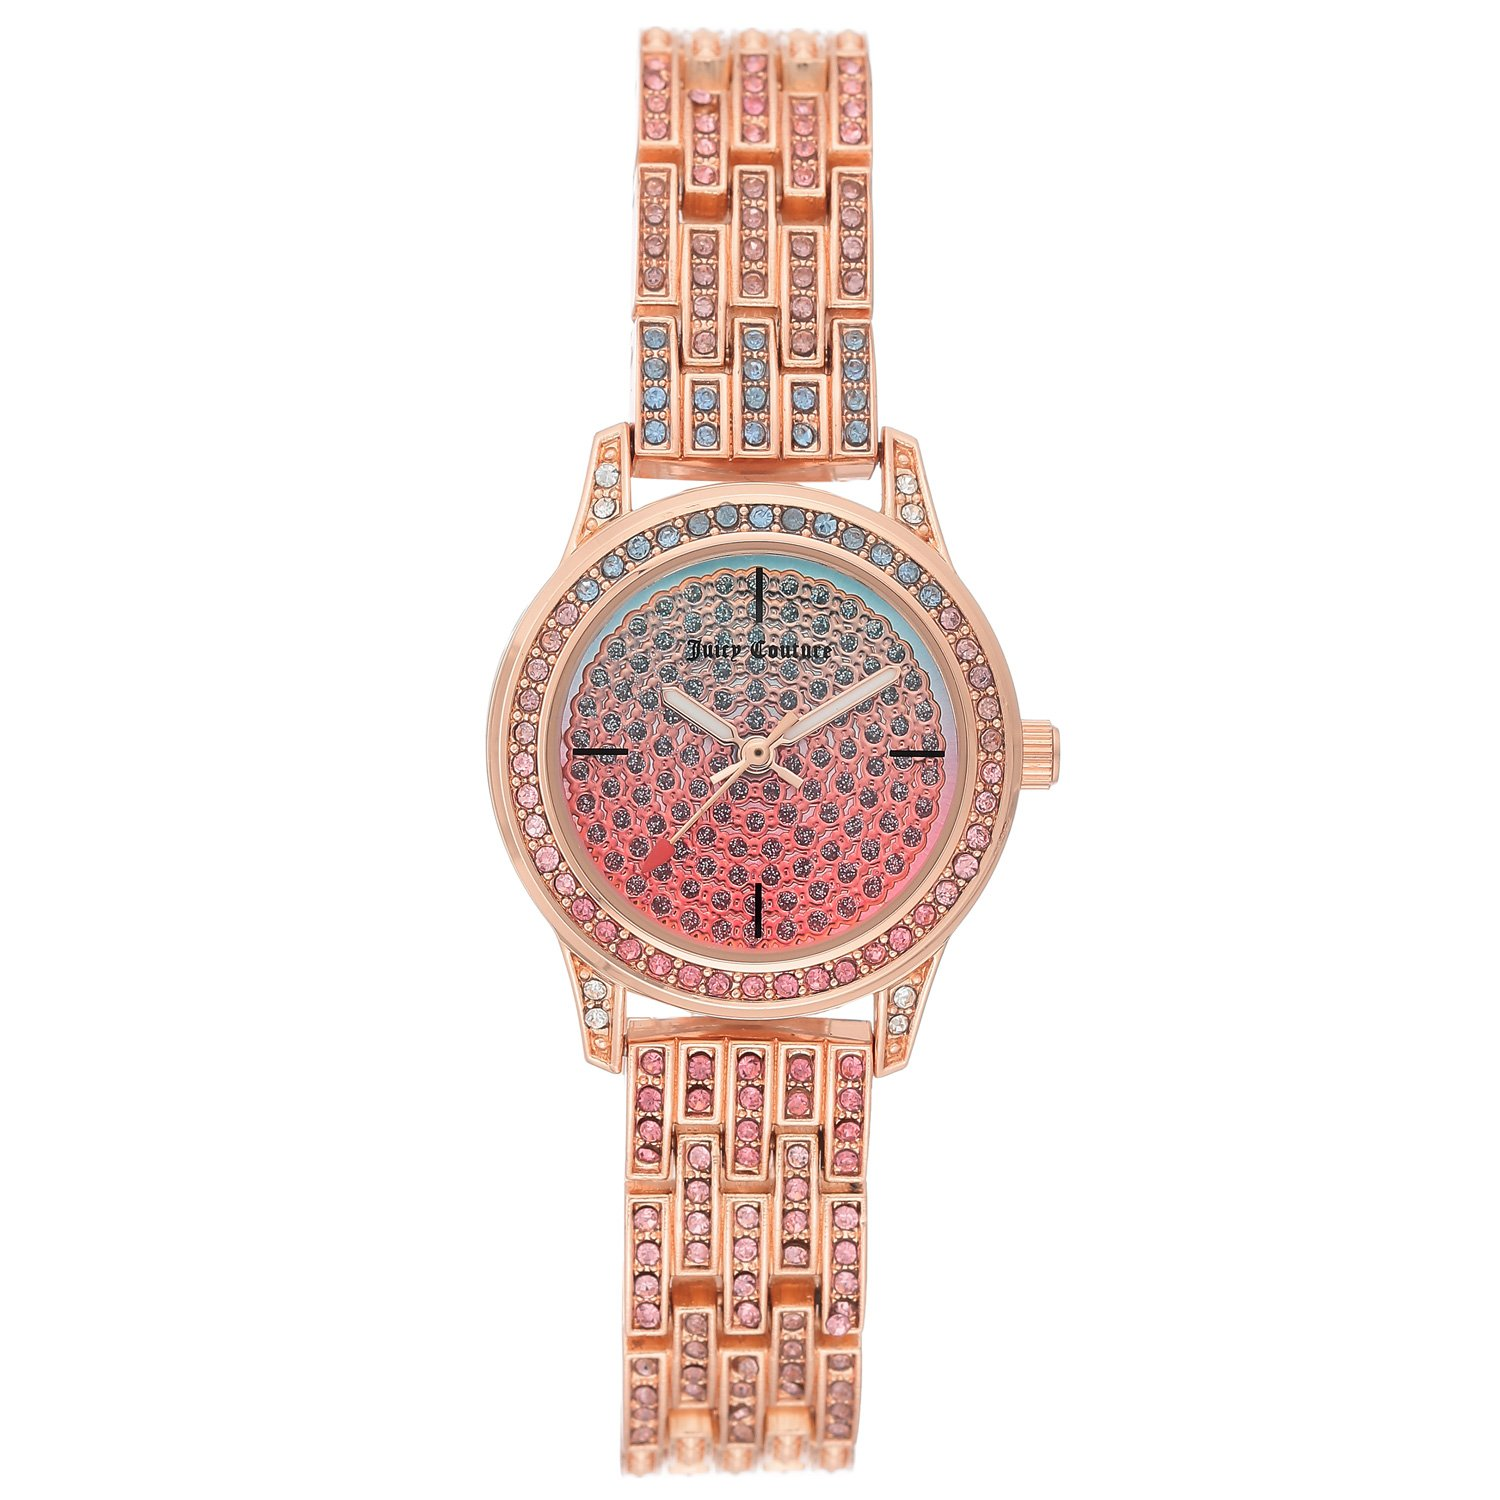 Juicy Couture Women's Watch Rose Gold JC/1144MTRG